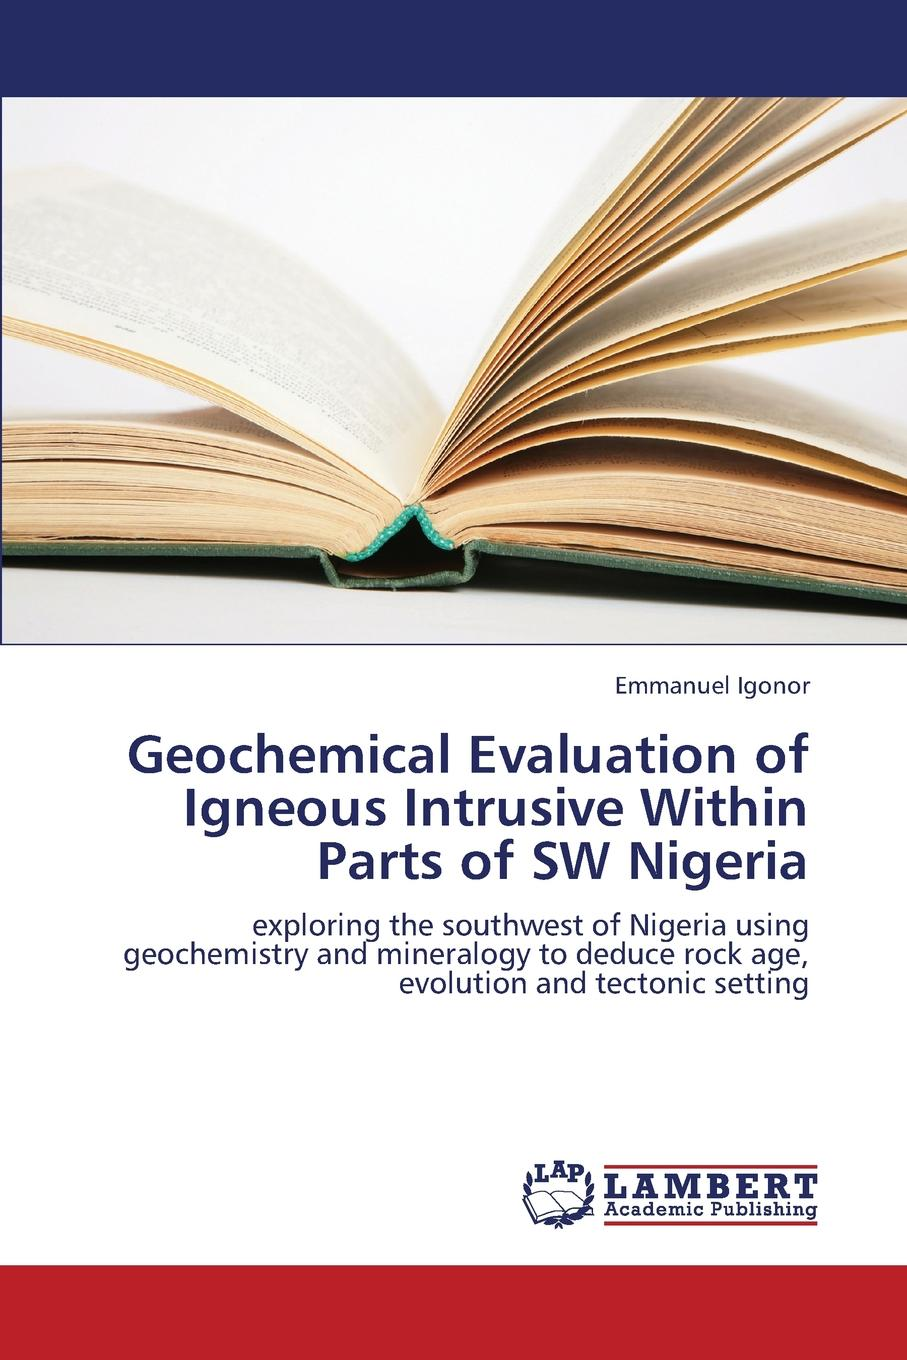 Igonor Emmanuel Geochemical Evaluation of Igneous Intrusive Within Parts of SW Nigeria detection and classification of masses in mammograms using ica